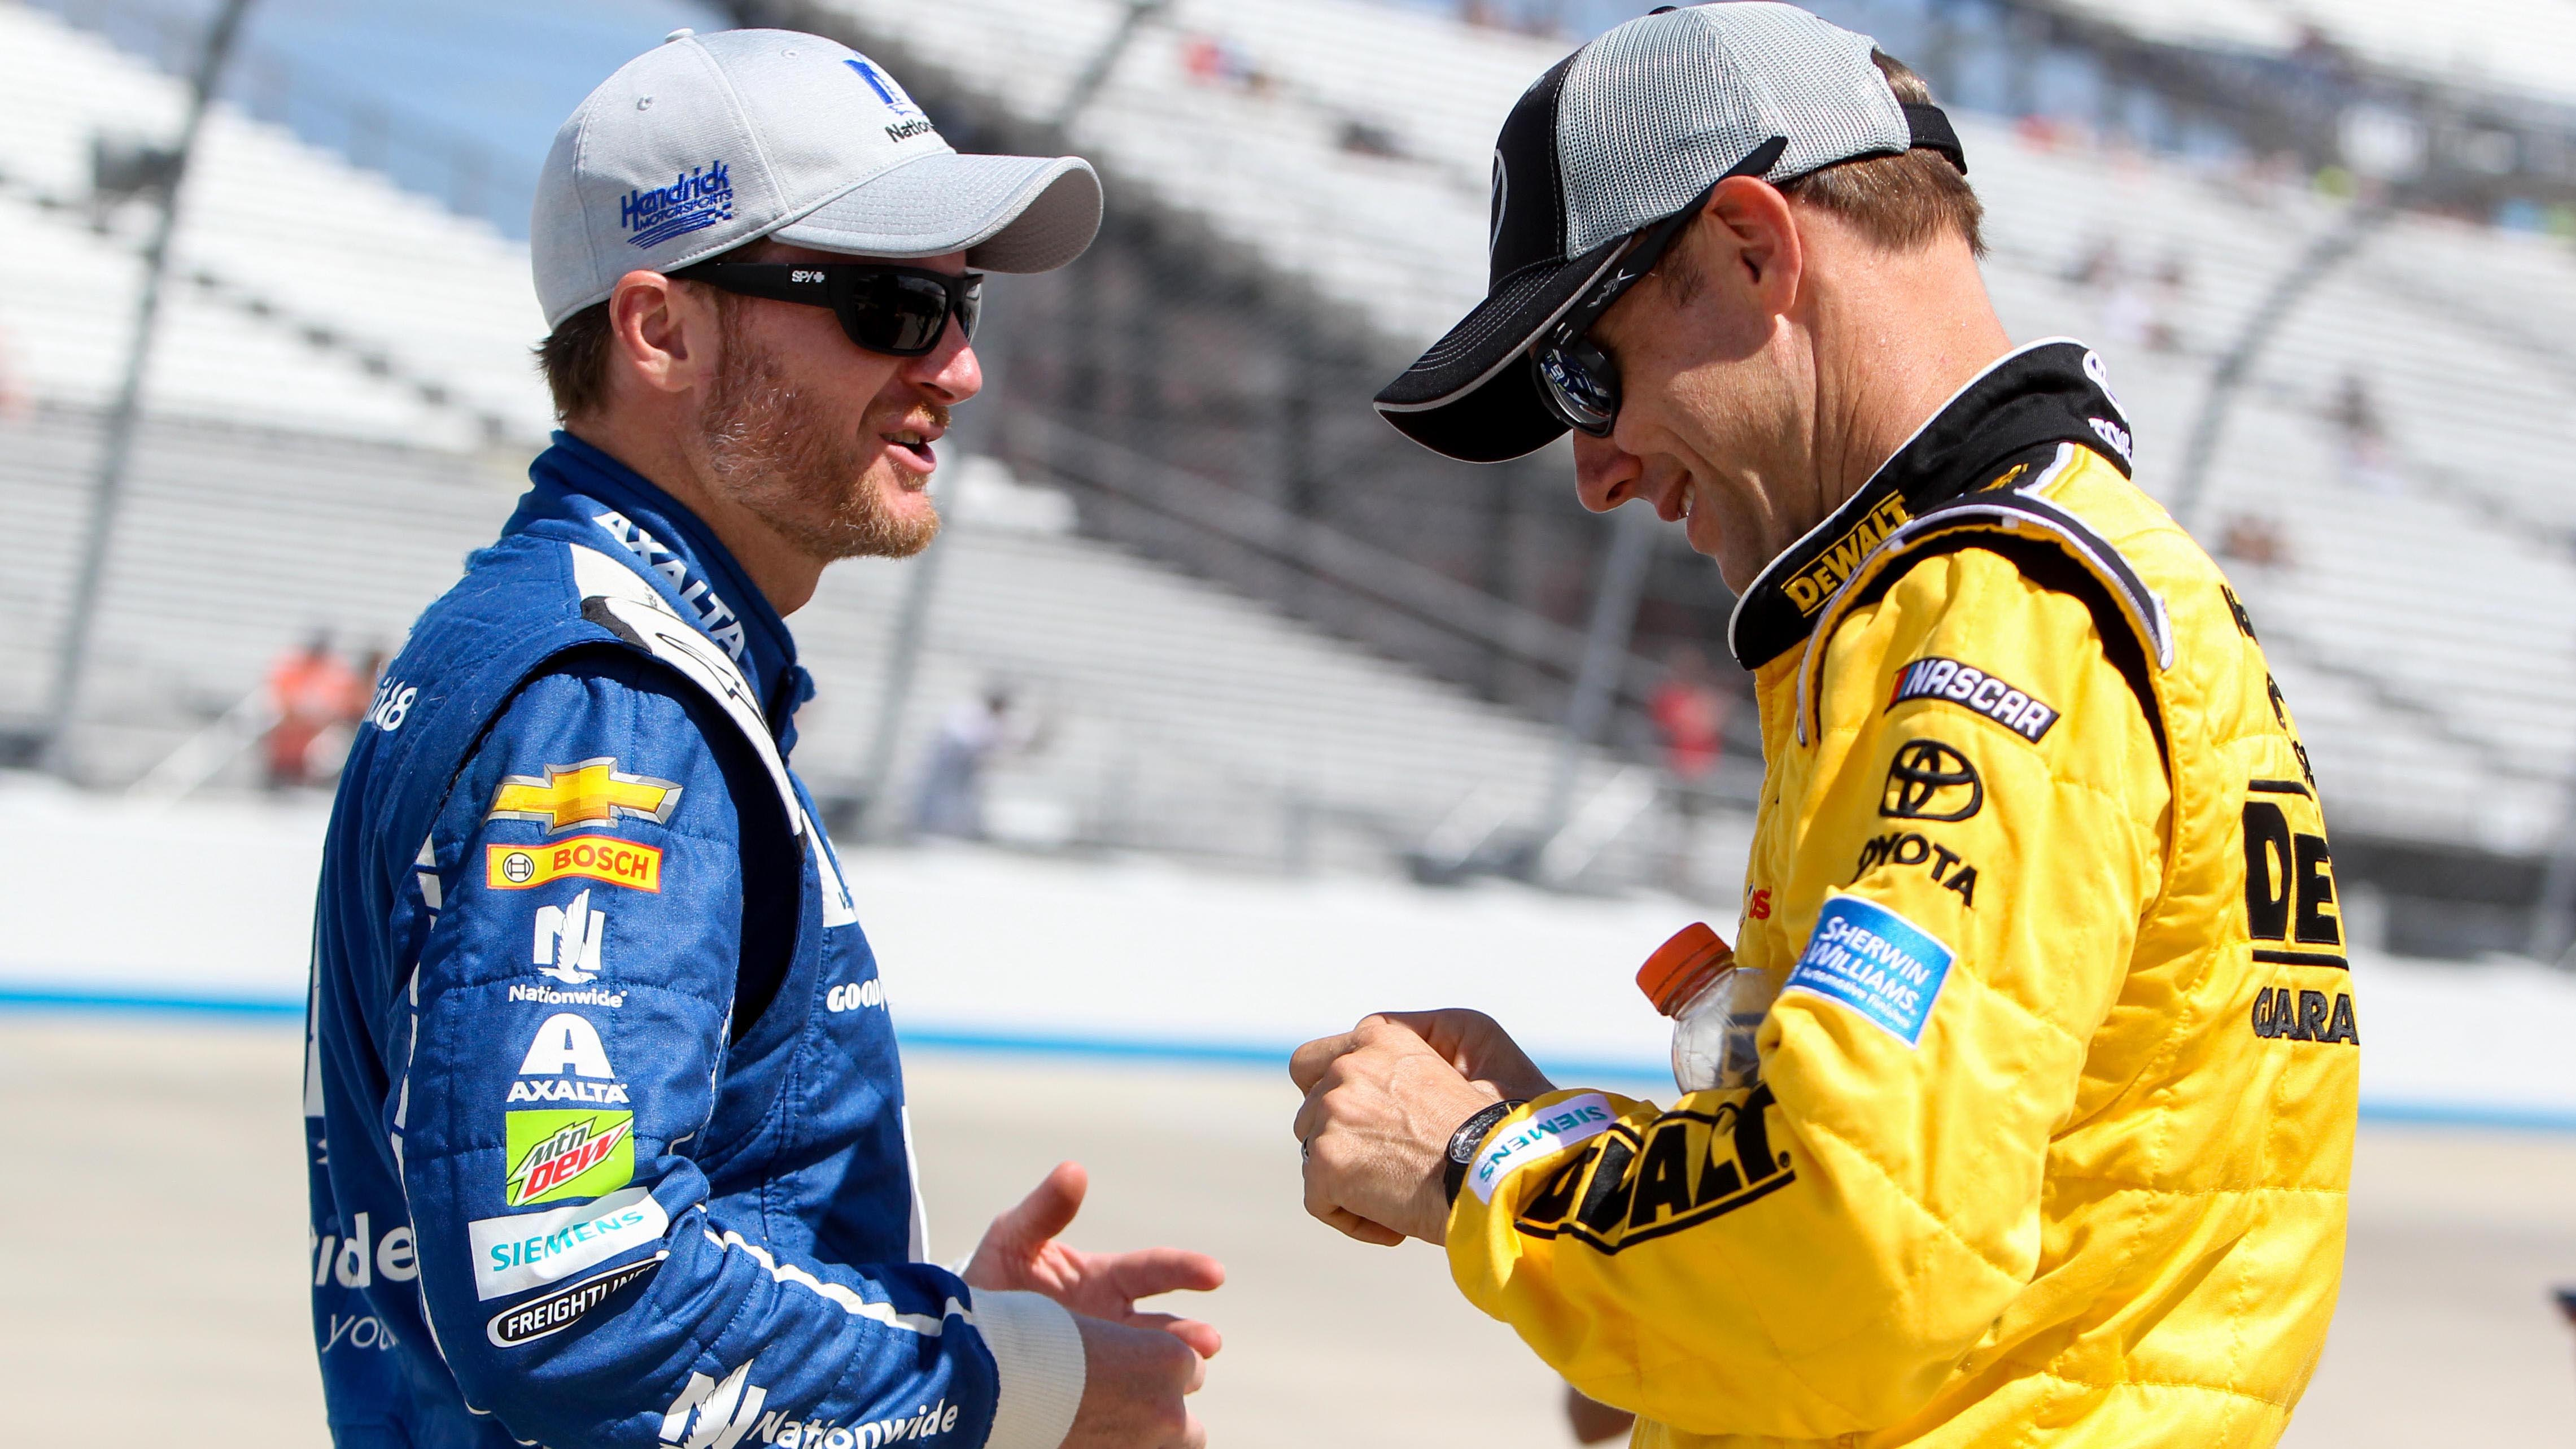 Jun 2, 2017; Dover, DE, USA; NASCAR Cup Series driver Dale Earnhardt Jr (left) and driver Matt Kenseth (right) talk on pit road during the qualifying for the AAA 400 Drive For Autism at Dover International Speedway. Mandatory Credit: Matthew O'Haren-USA TODAY Sports